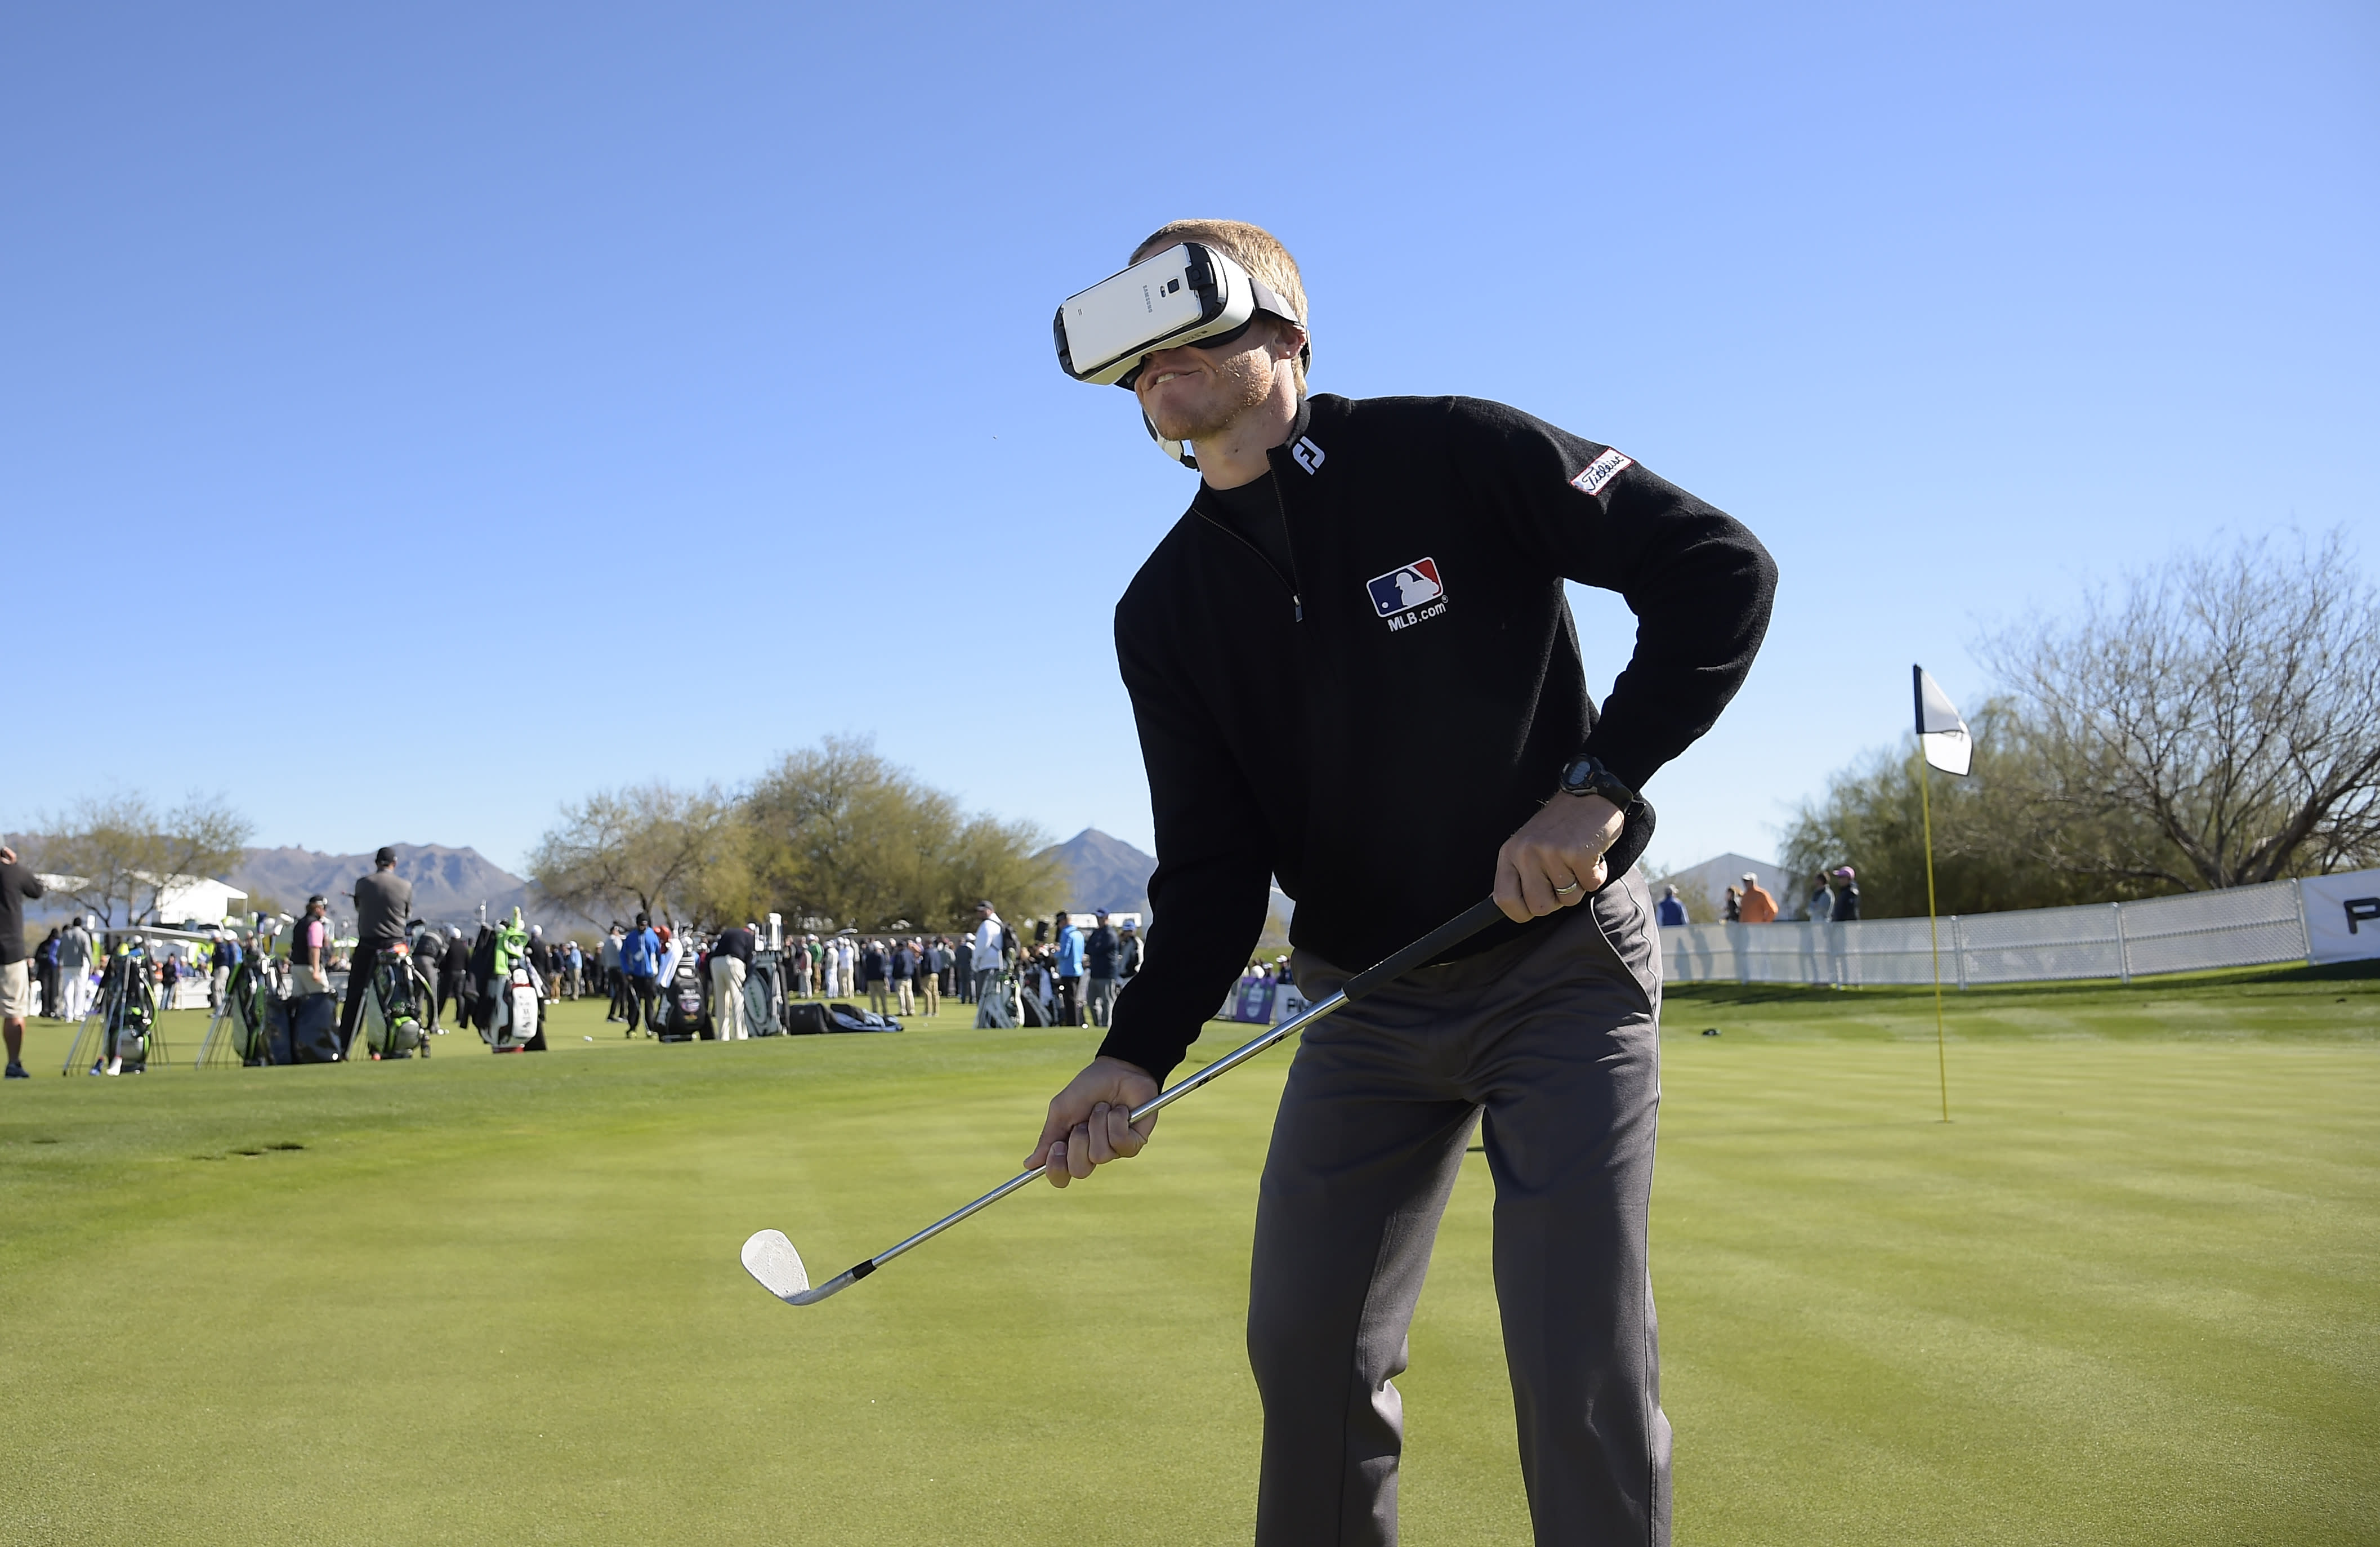 PGA Tour Goes Virtual with Gear VR App